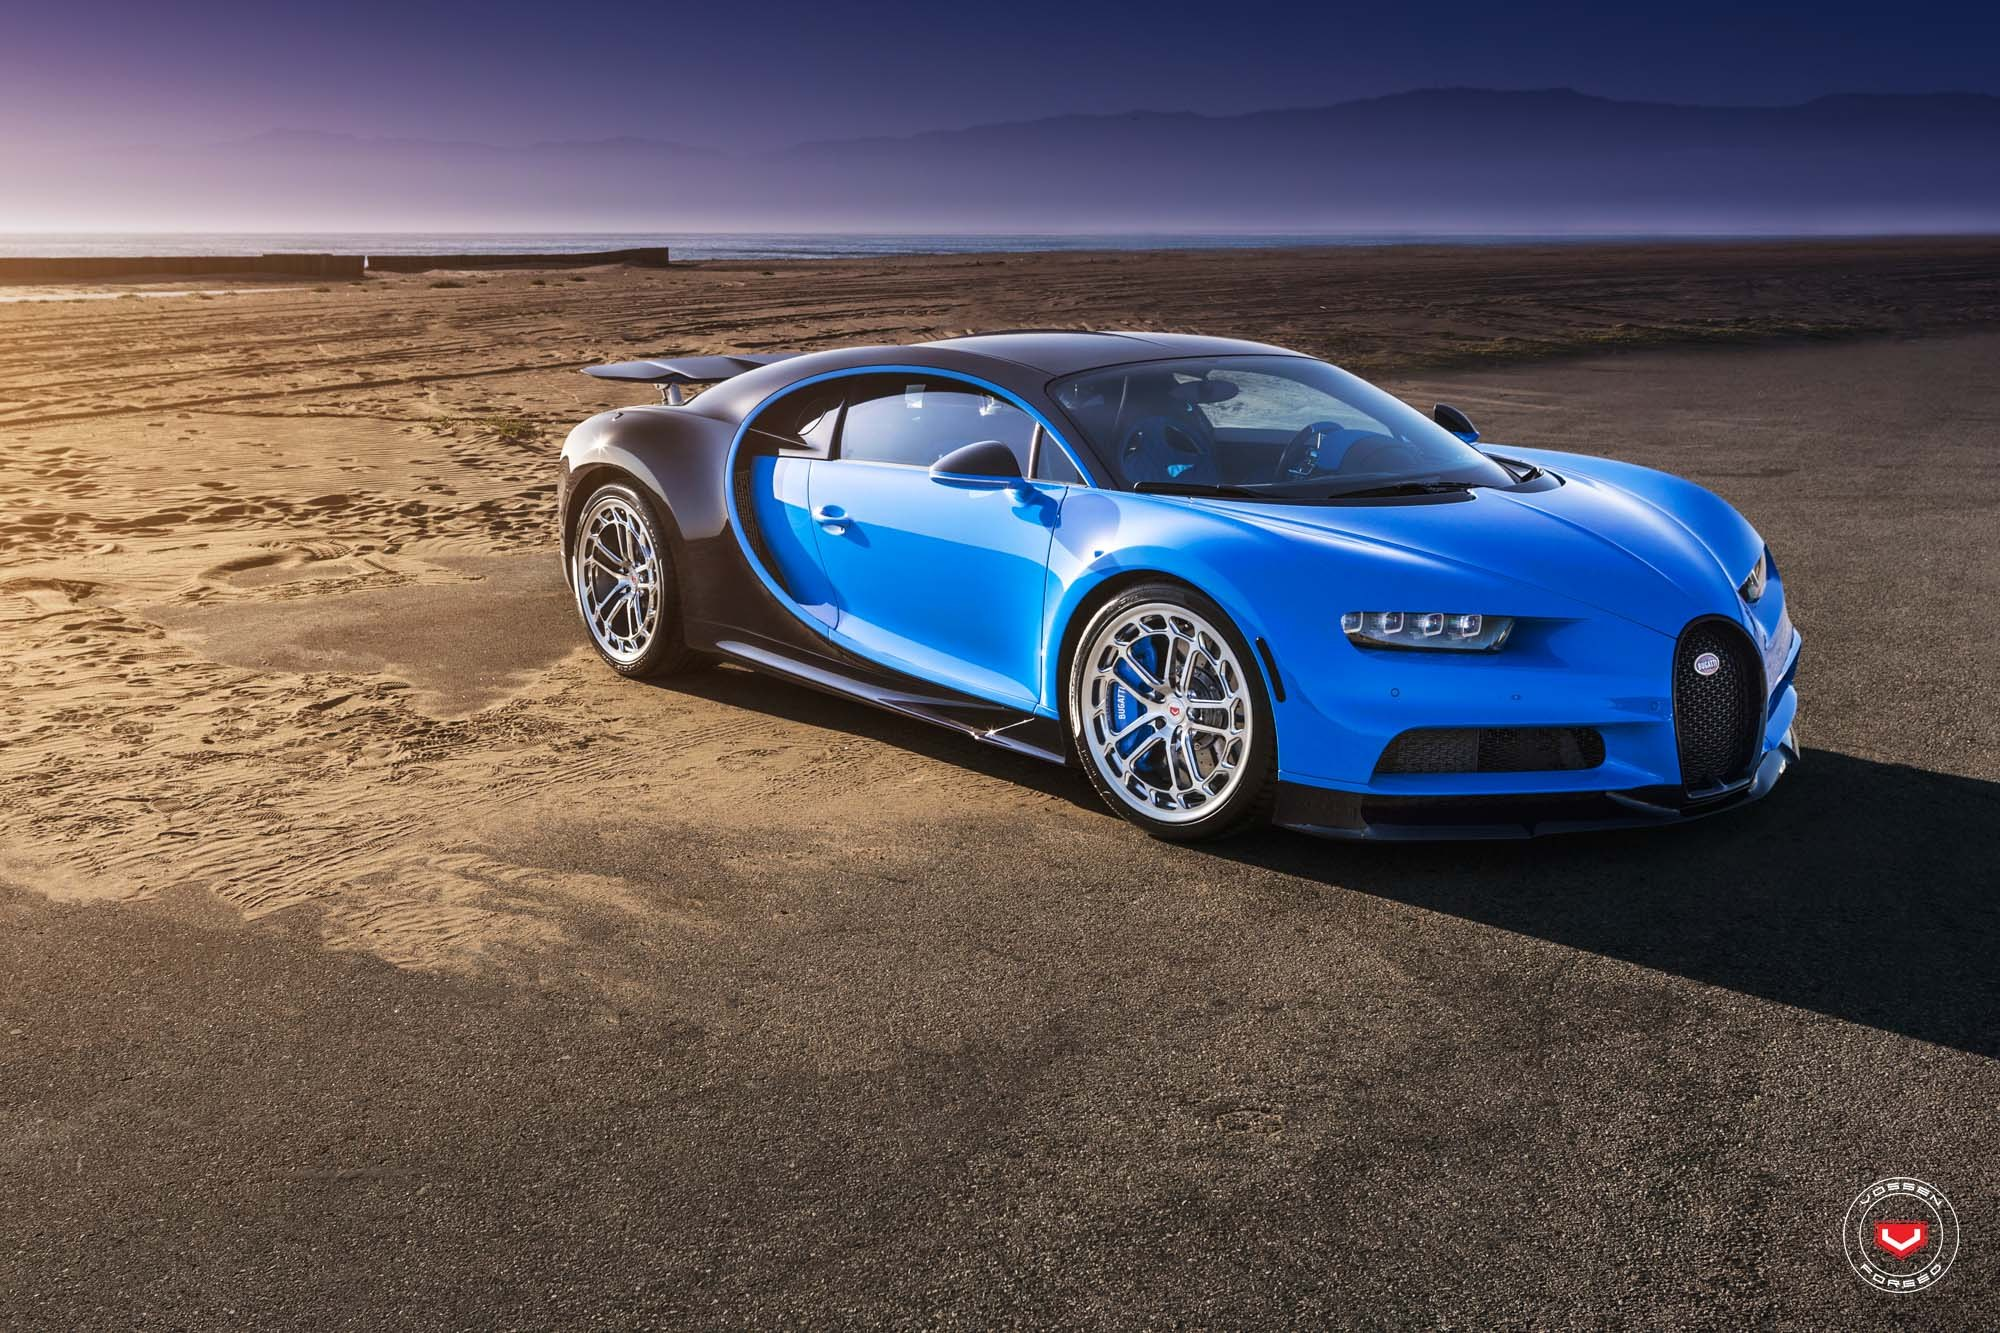 Custom 2019 Bugatti Chiron Images Mods Photos